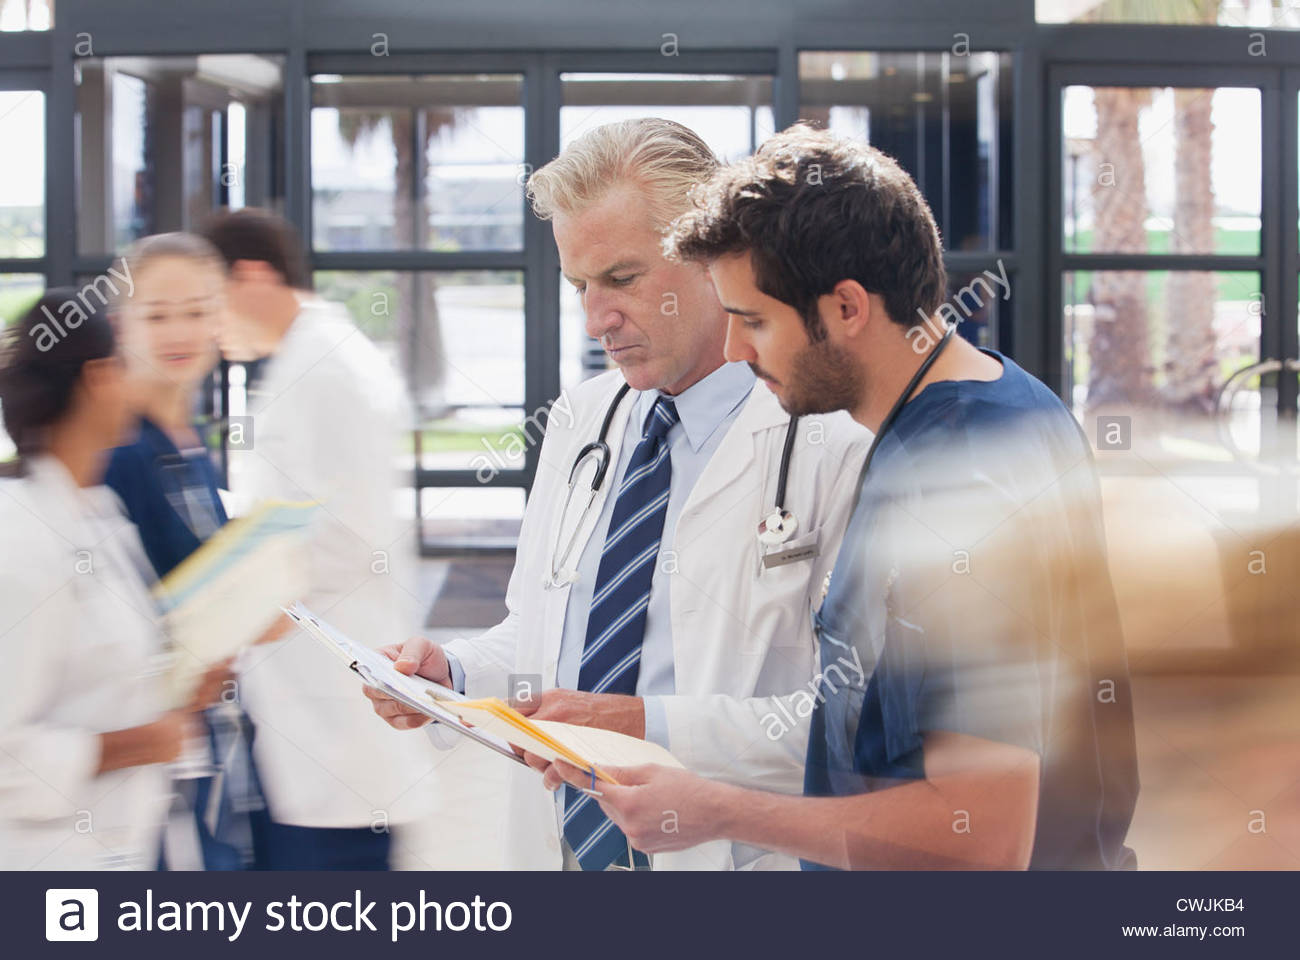 Doctor and nurse reviewing medical record in hospital - Stock Image